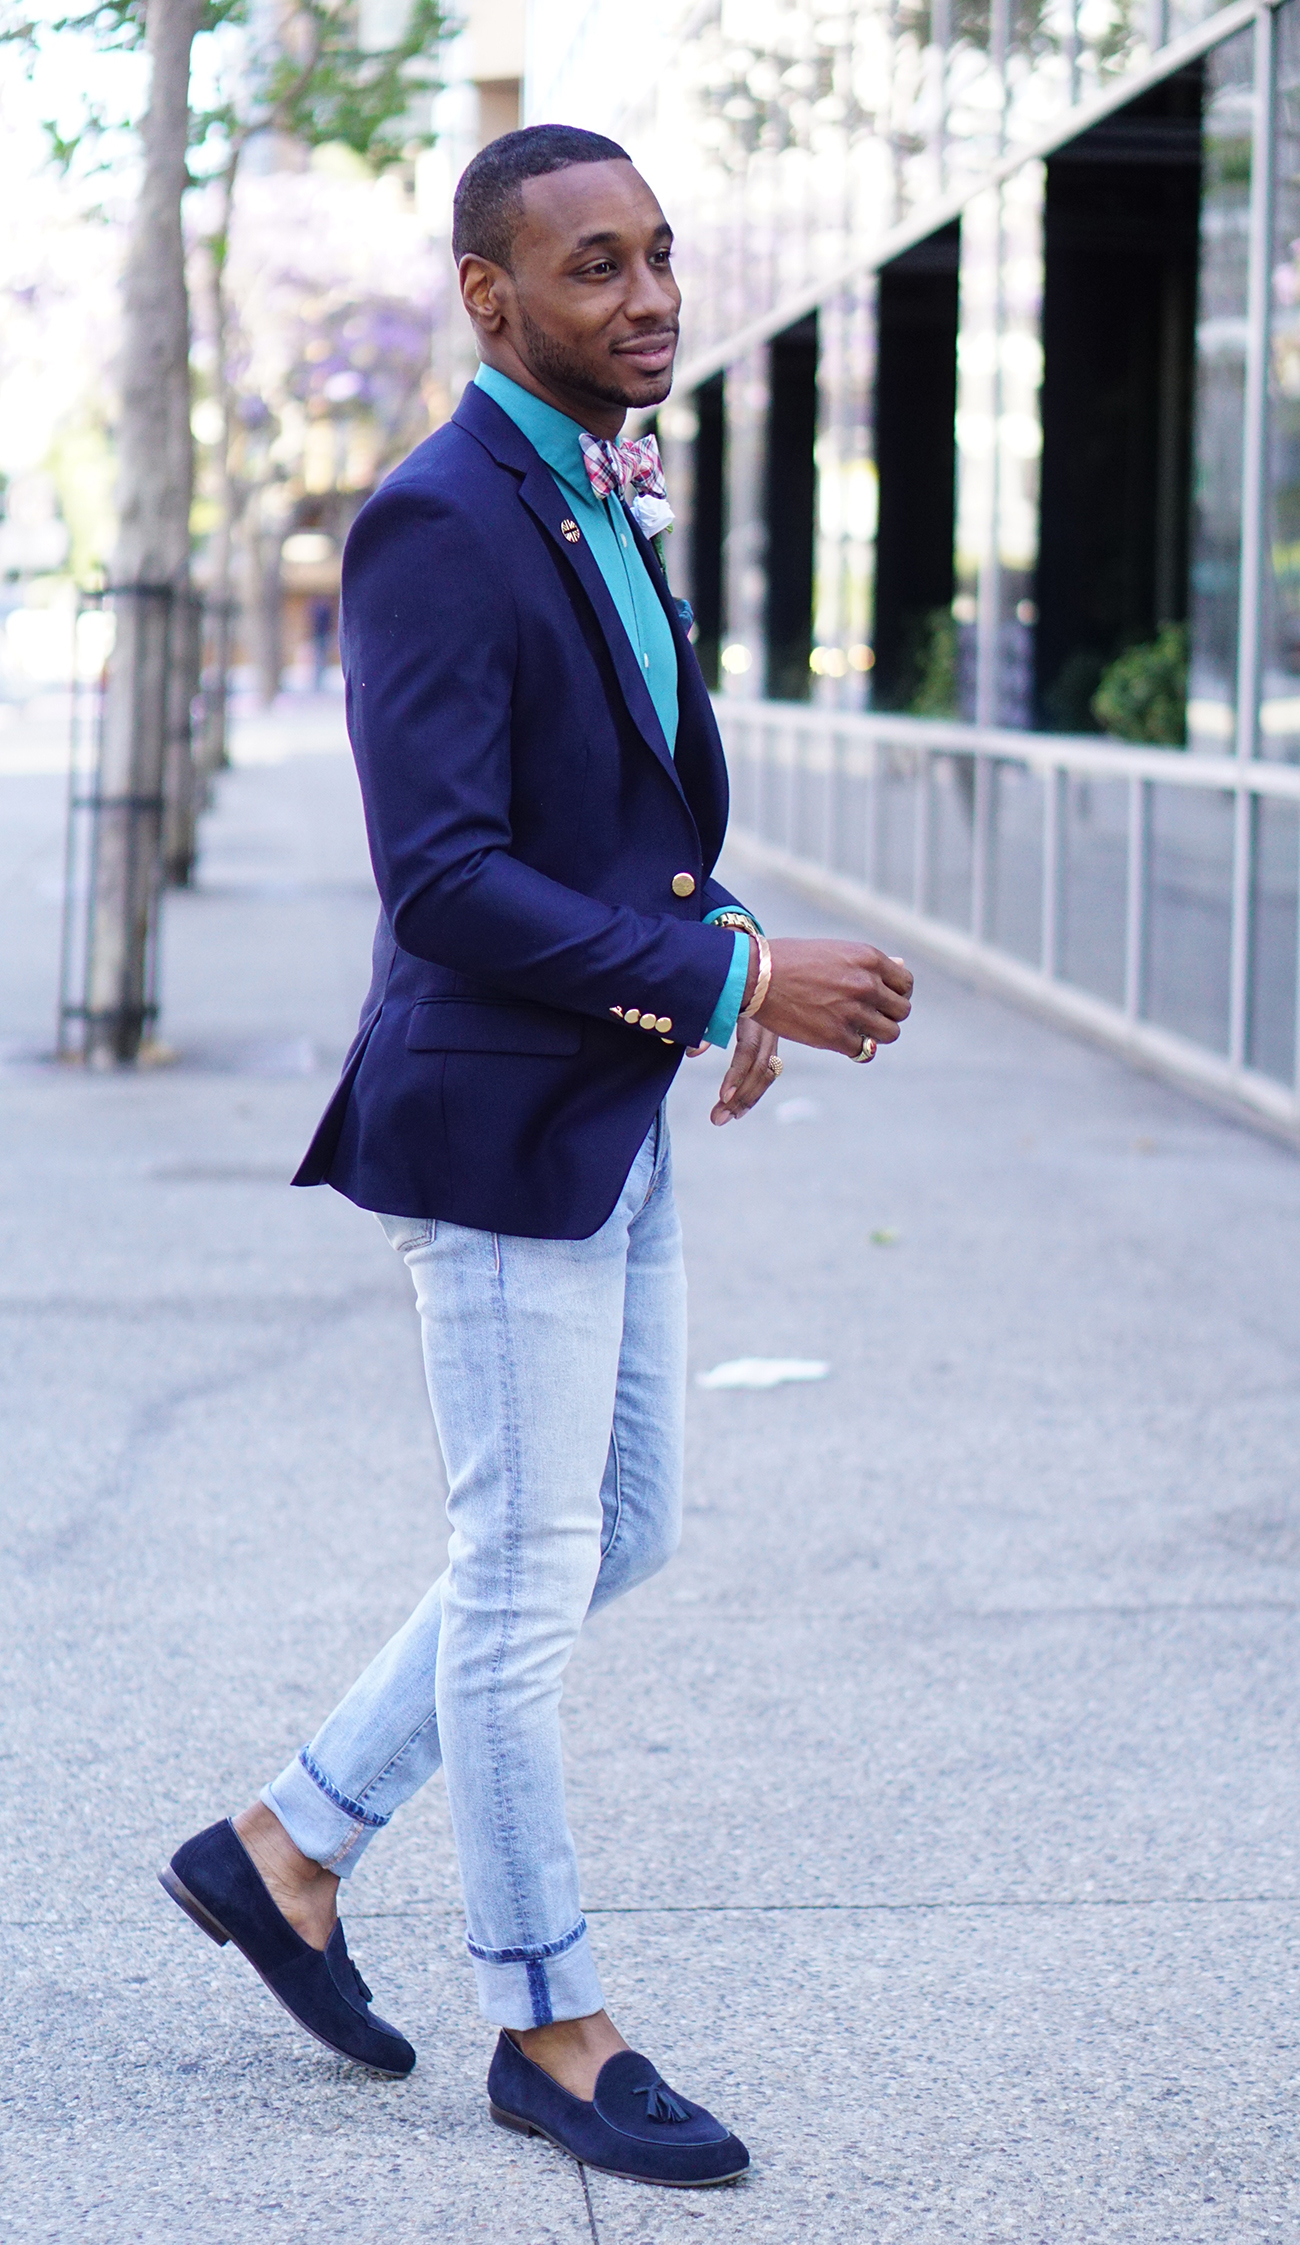 Sweater With Bow Tie